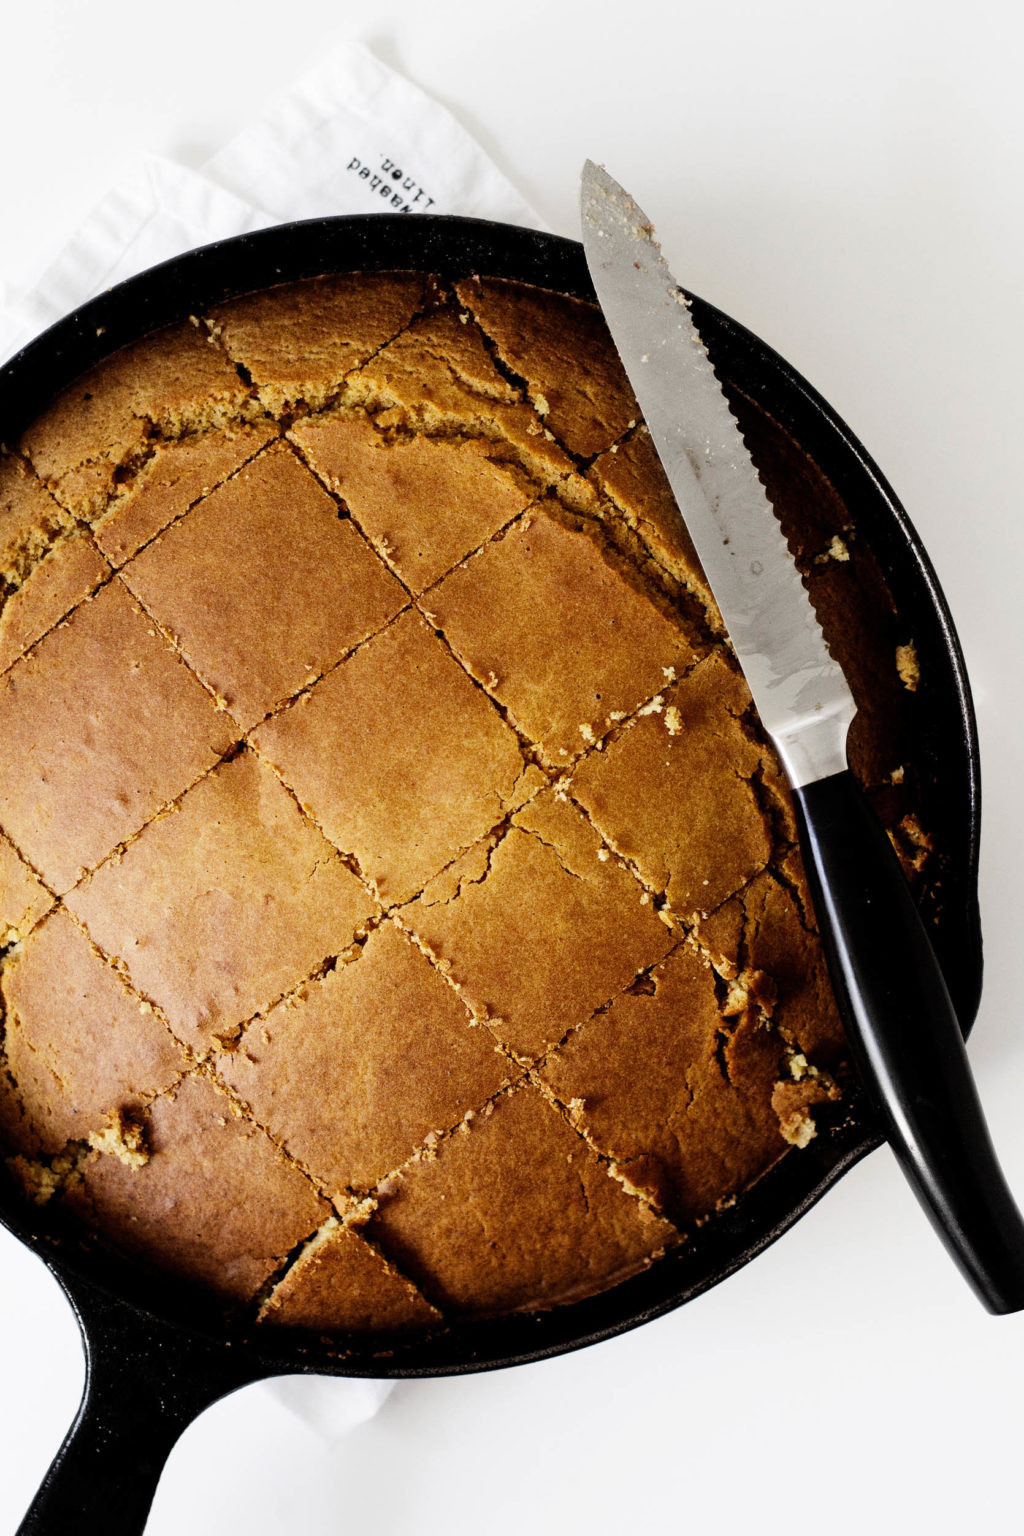 A skillet full of warm cornbread. The cornbread has been cut into squares, ready for eating.